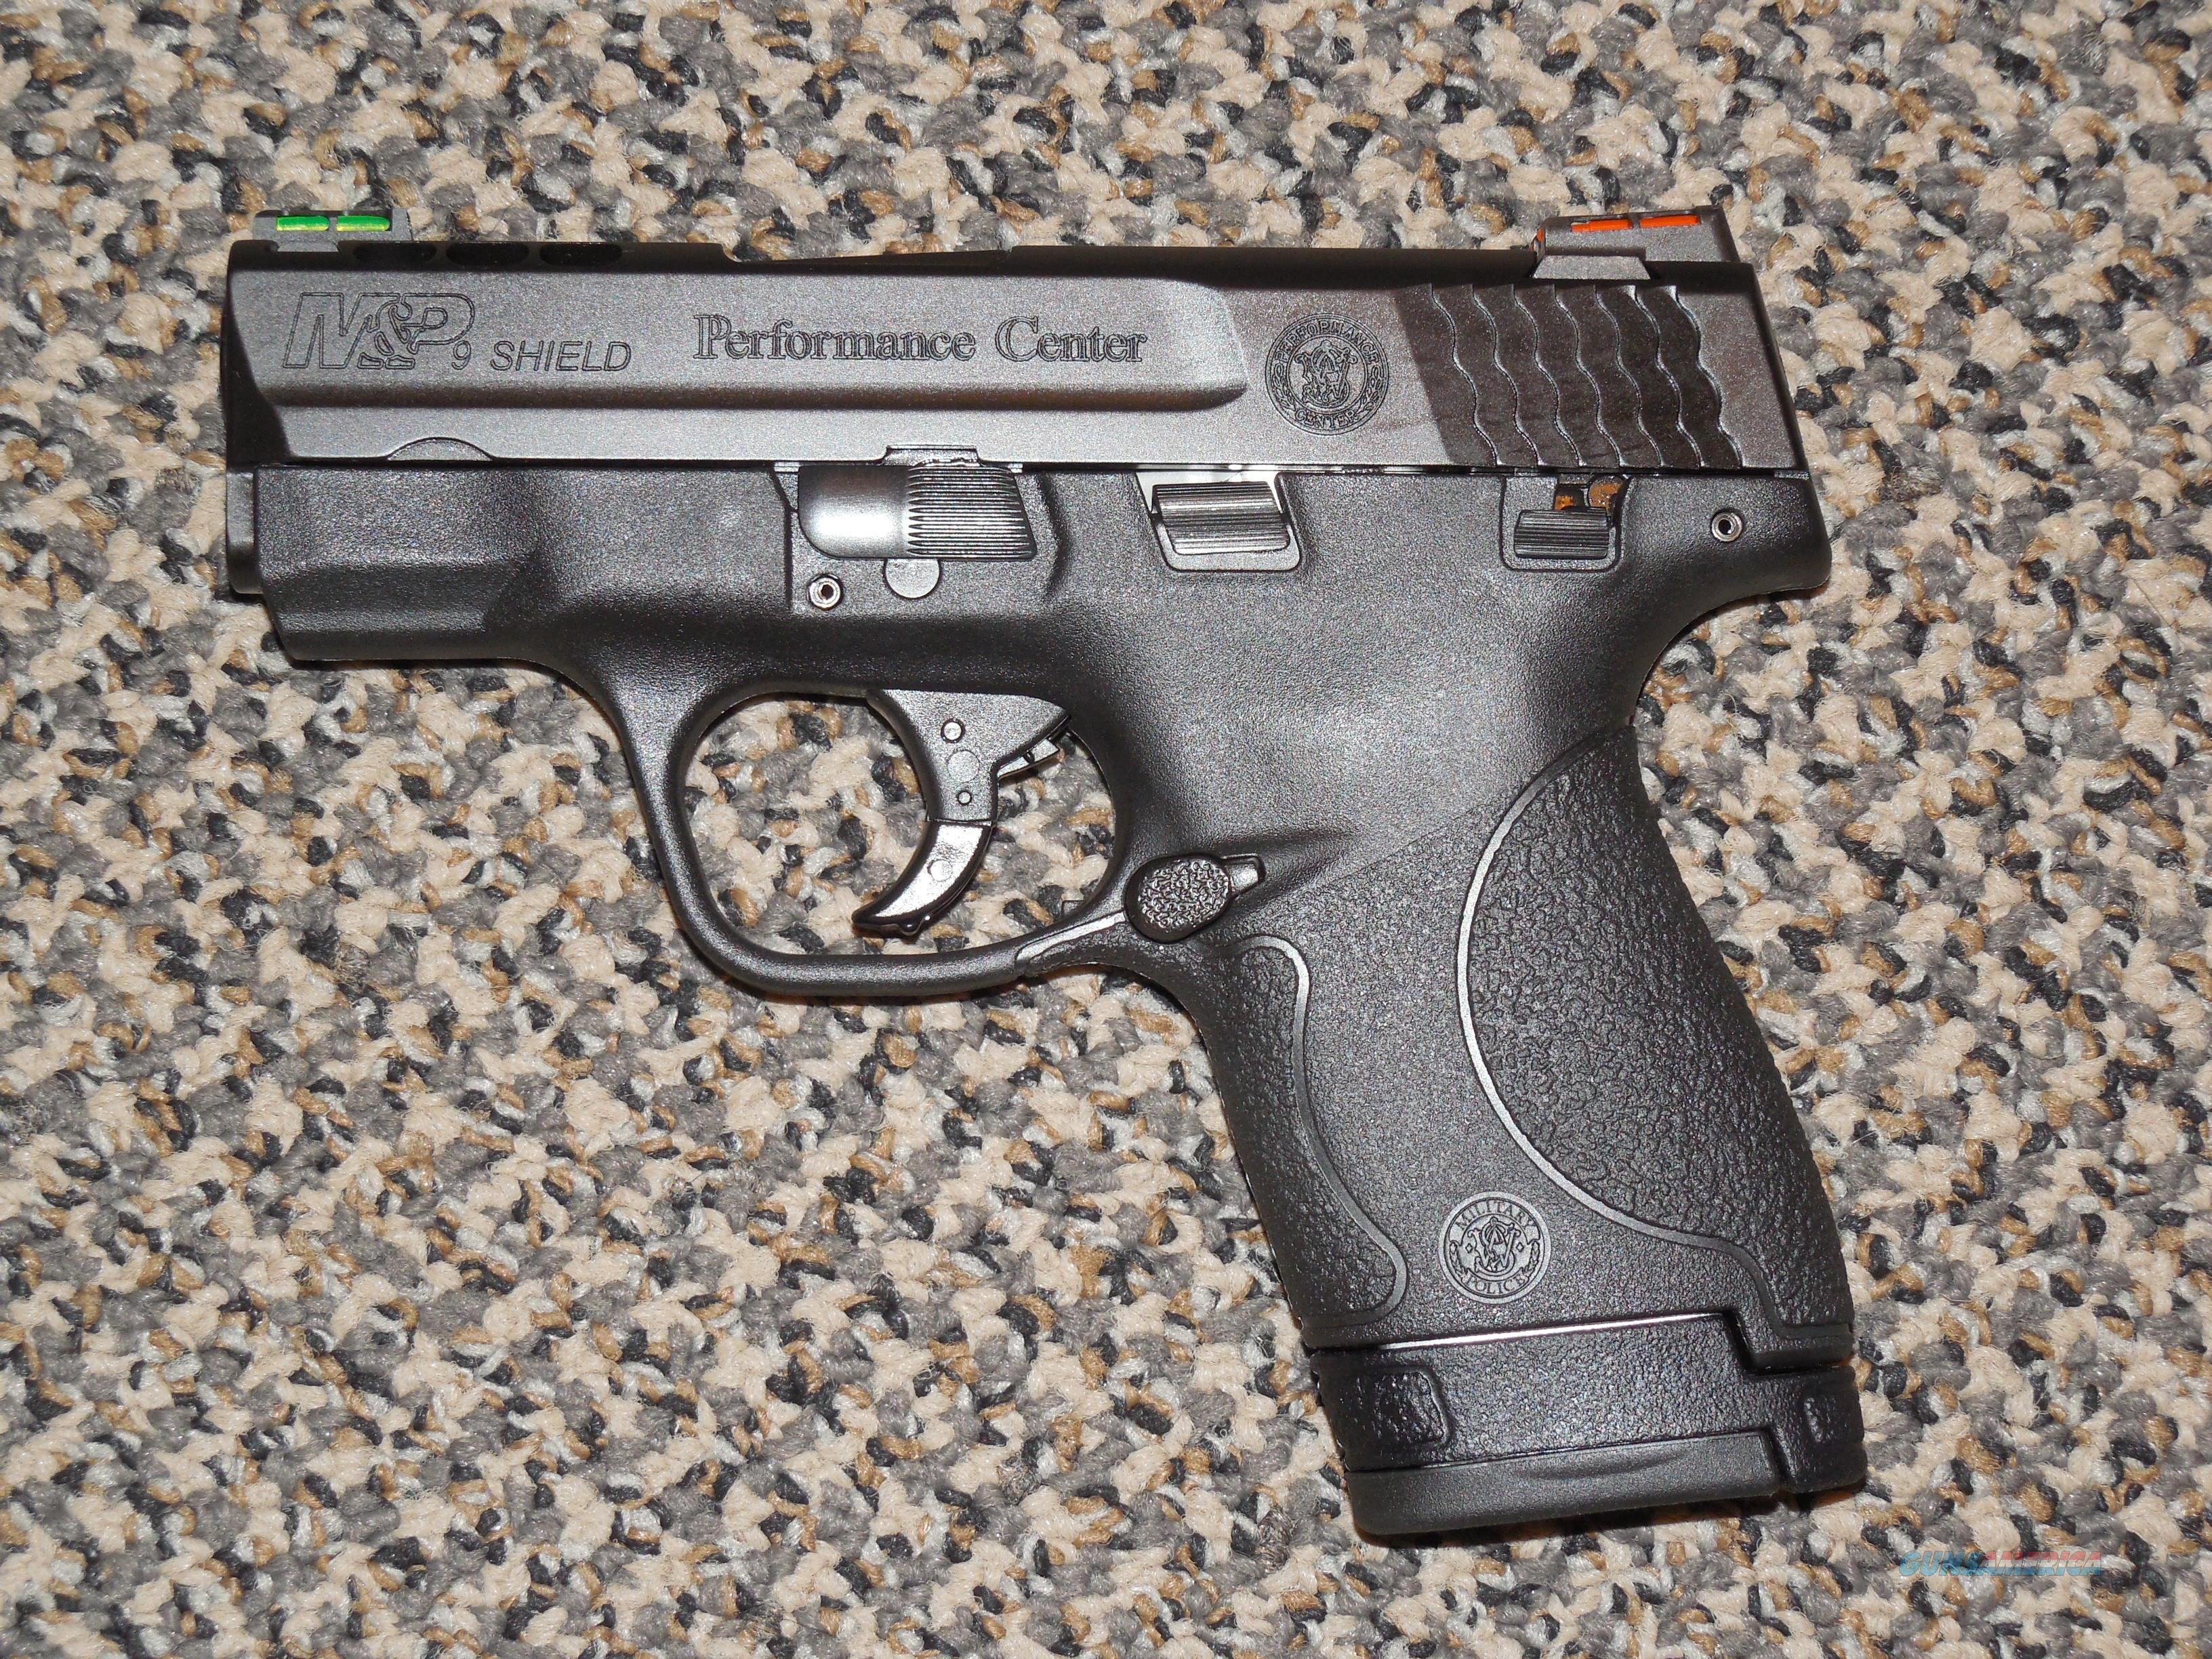 S w m p shield 9mm performance center ported pistol for M p ported shield 9mm